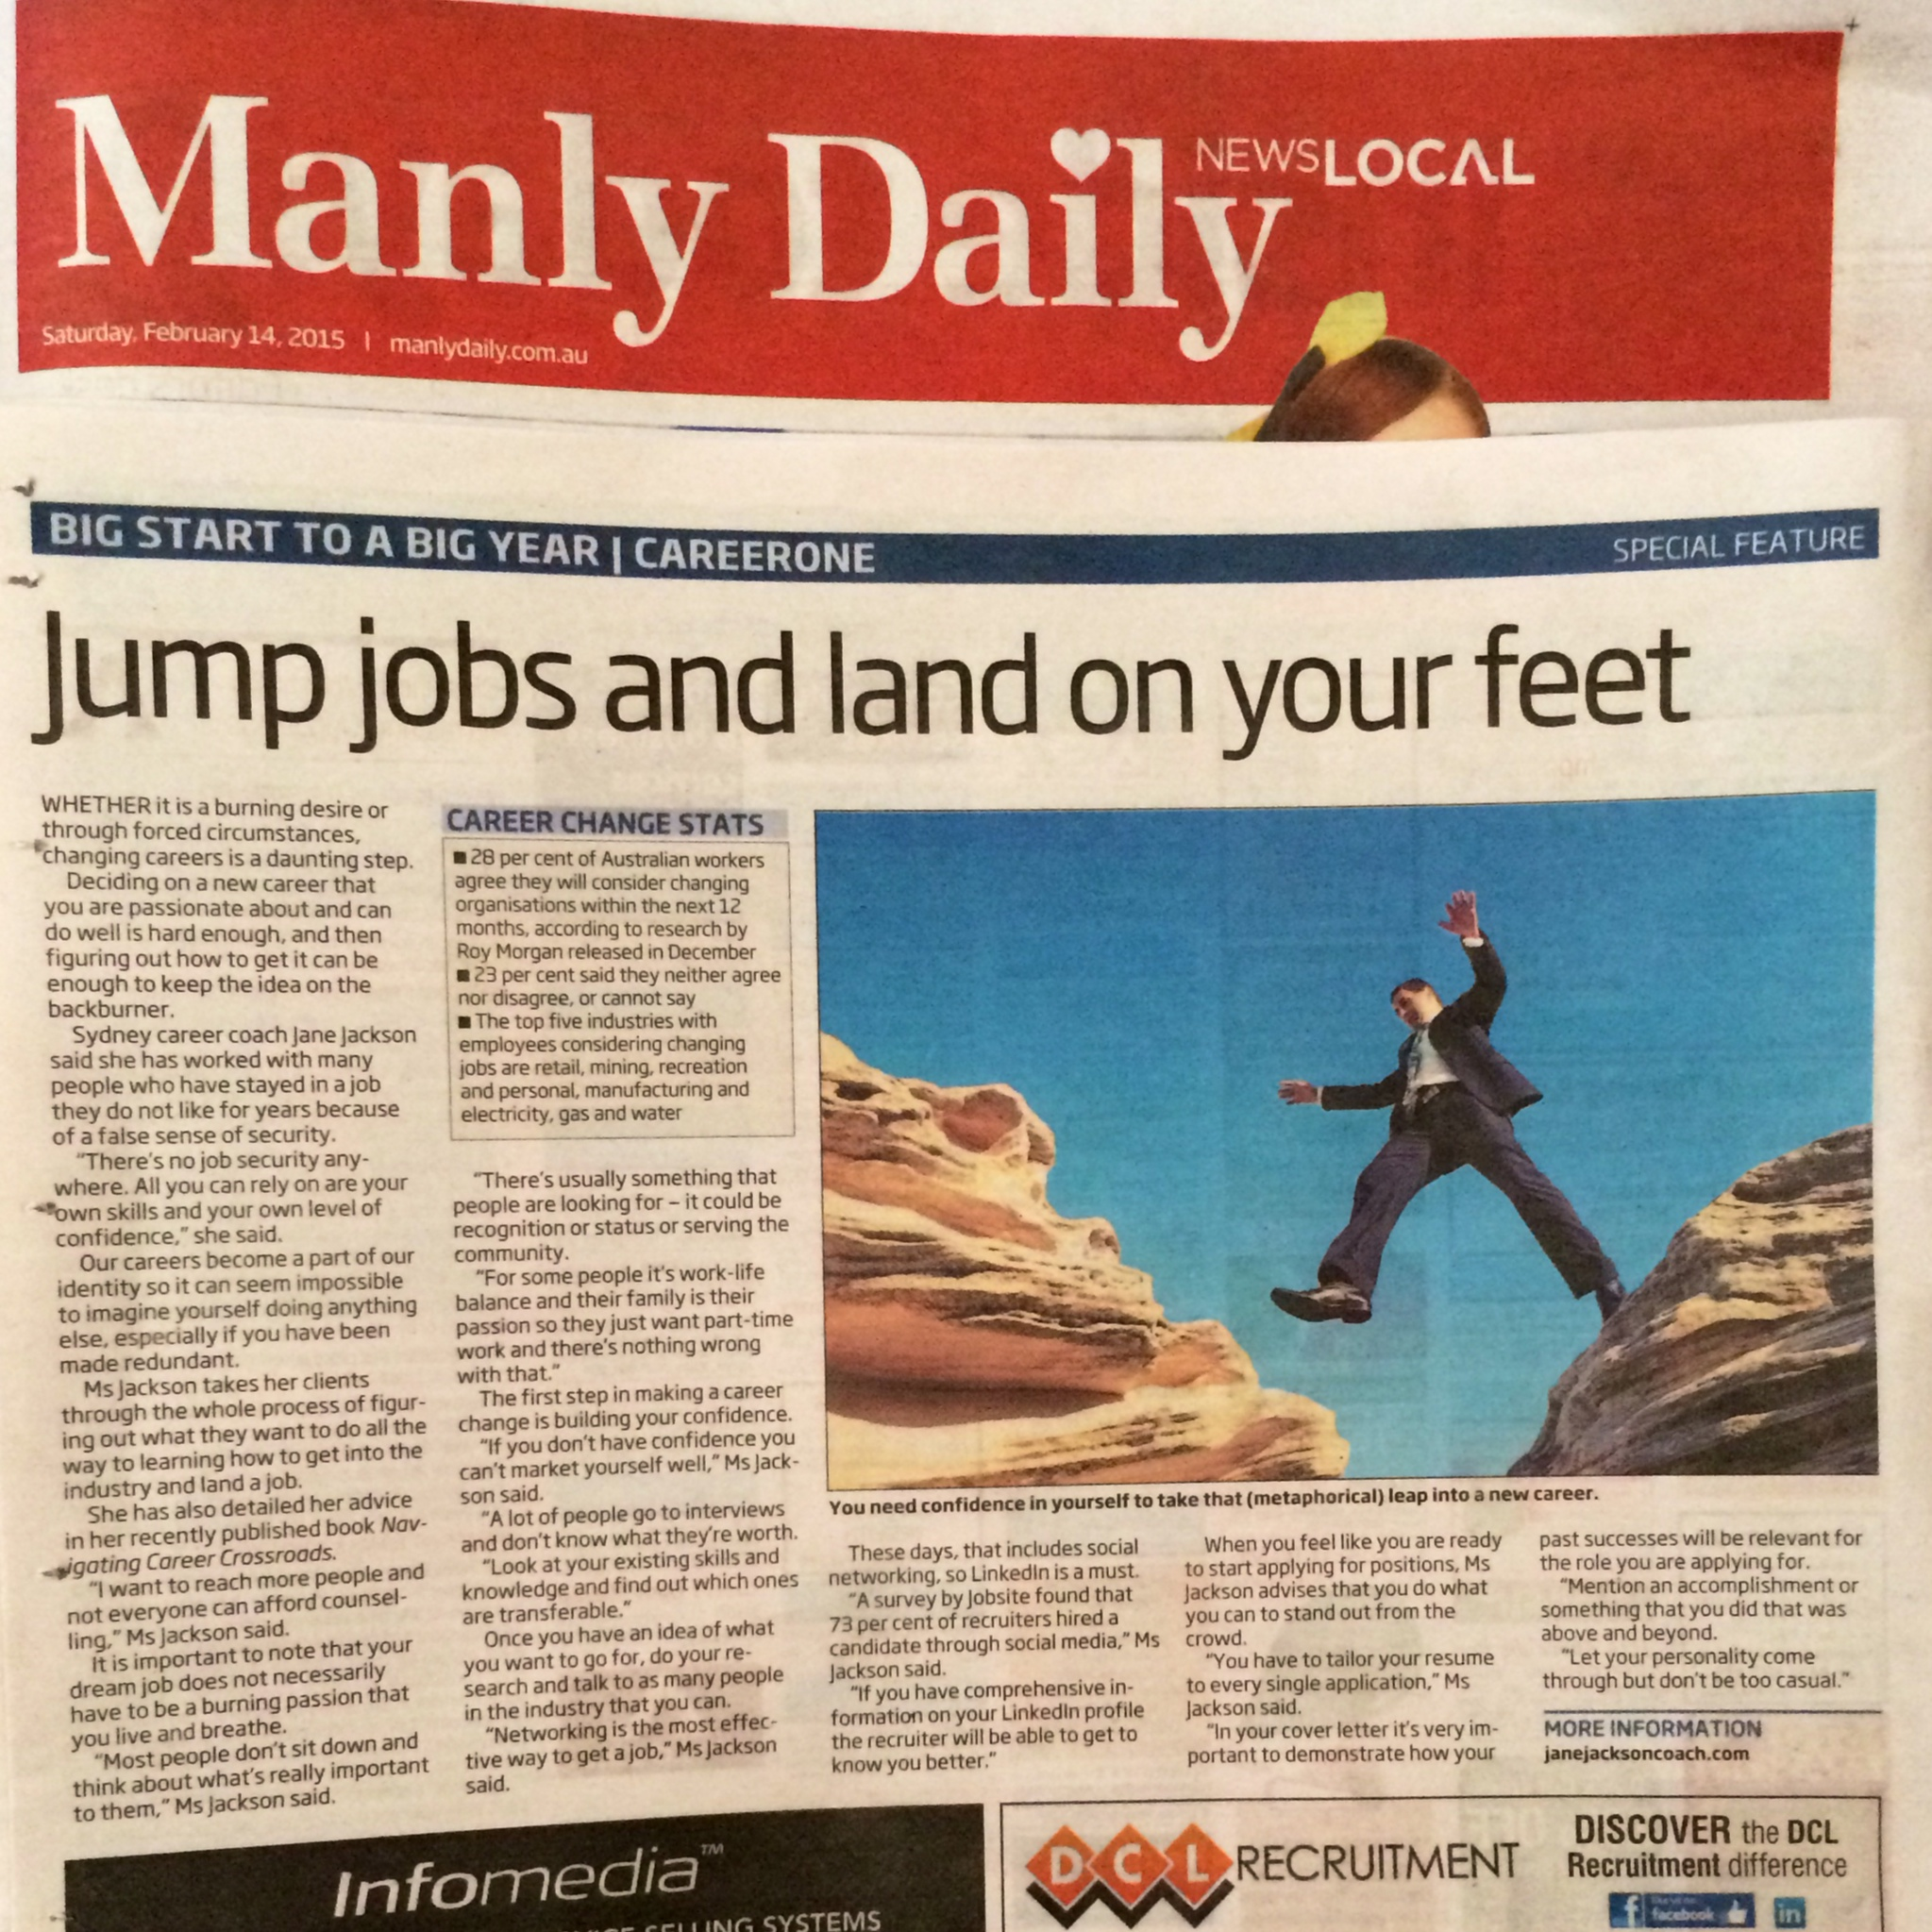 Manly Daily, News Local, Jane Jackson, Careers, Career Tips